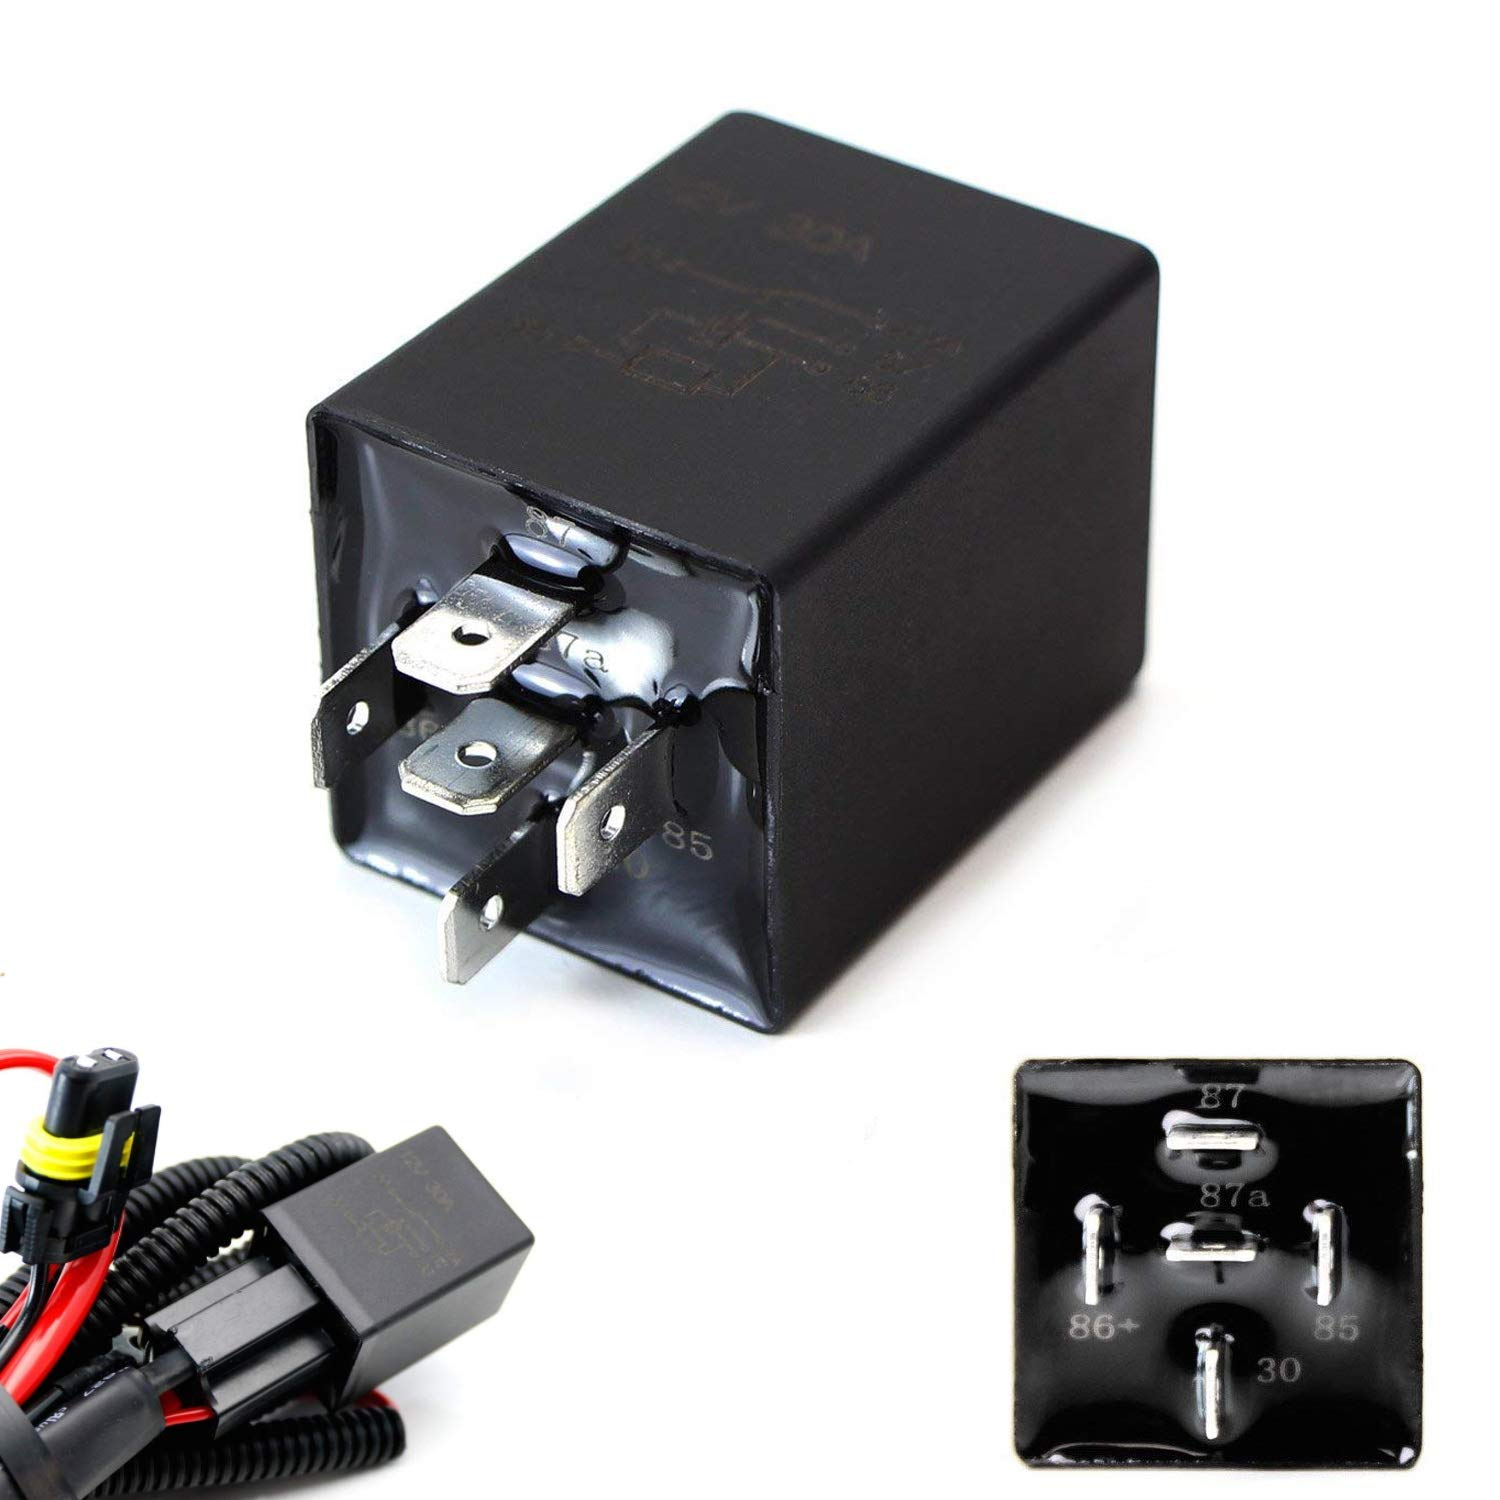 iJDMTOY (1) 10-Second Time Delay Relay Module, 5-Pin 12V 30A SPDT, For Automotive Lighting iJDMTOY Auto Accessories For Repair Conversion Custom Retrofit